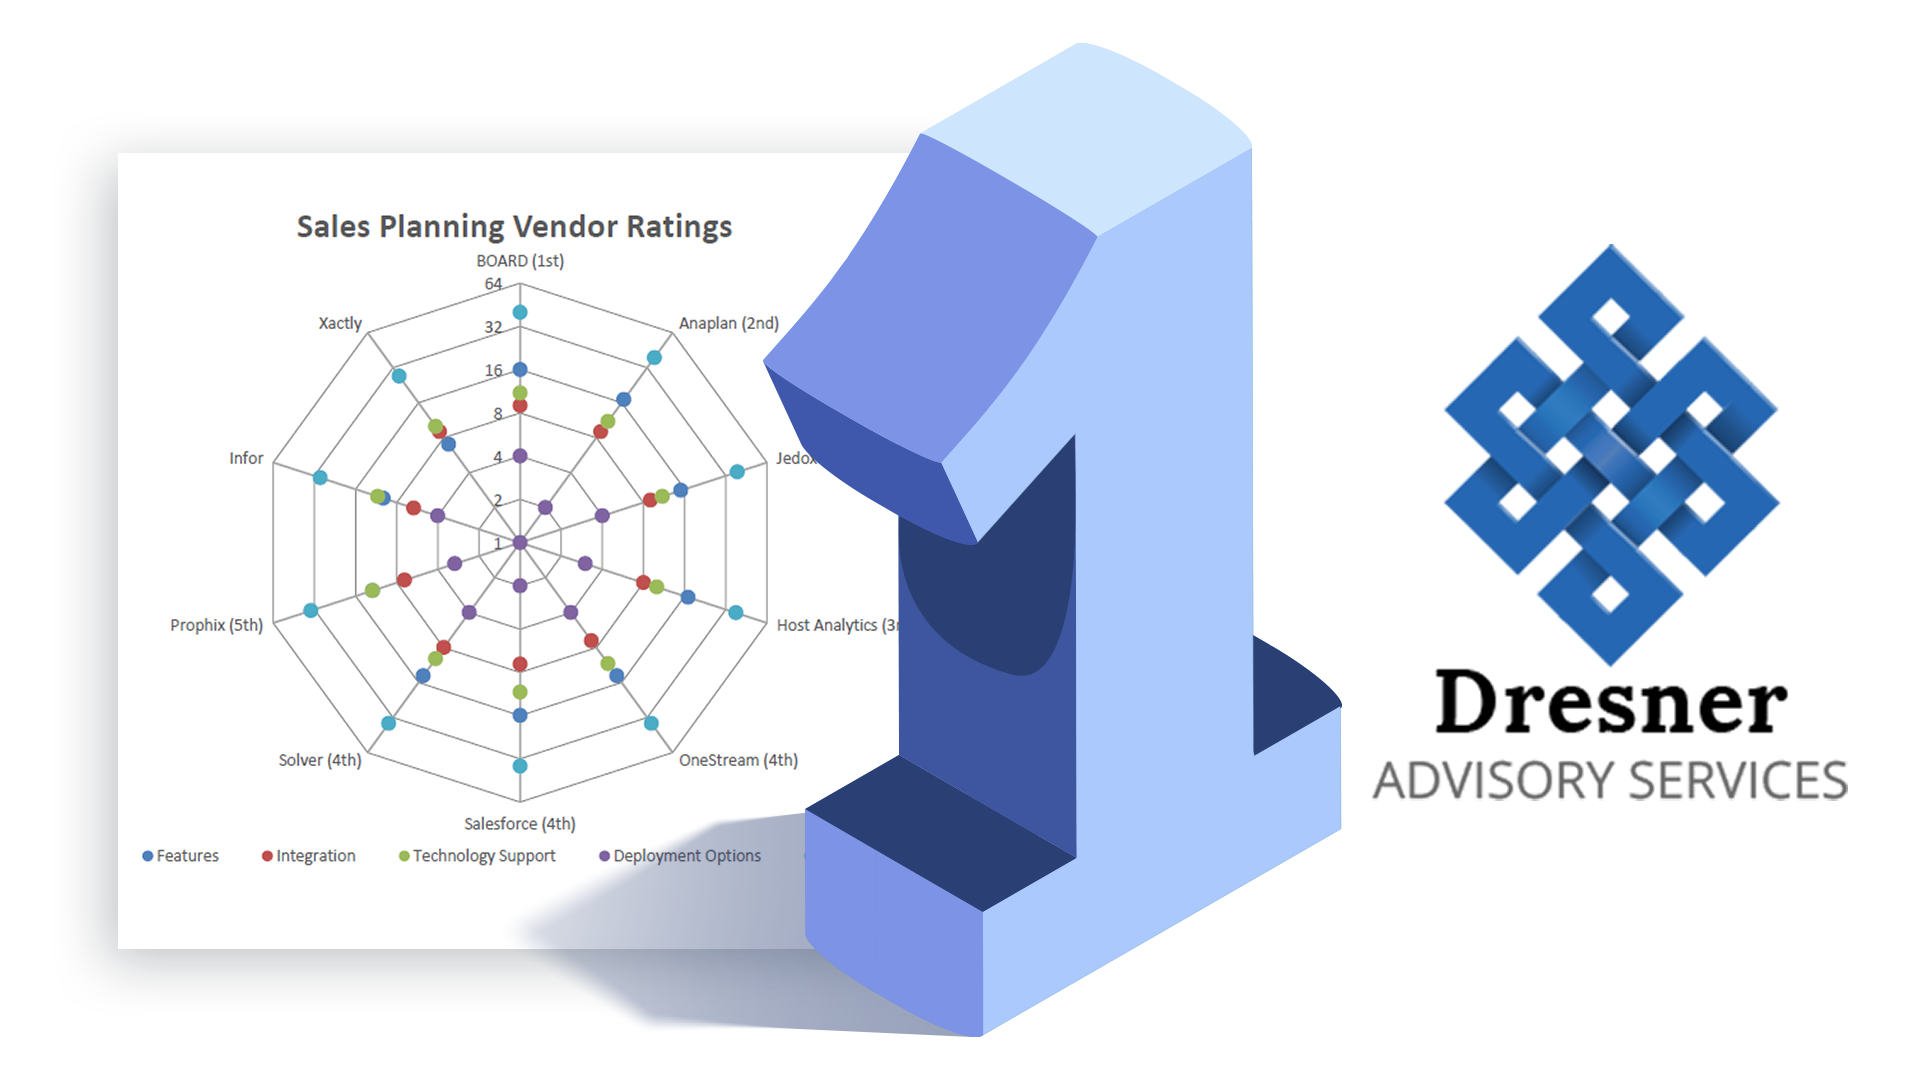 Board is number one Sales Planning software according to Dresner Advisory